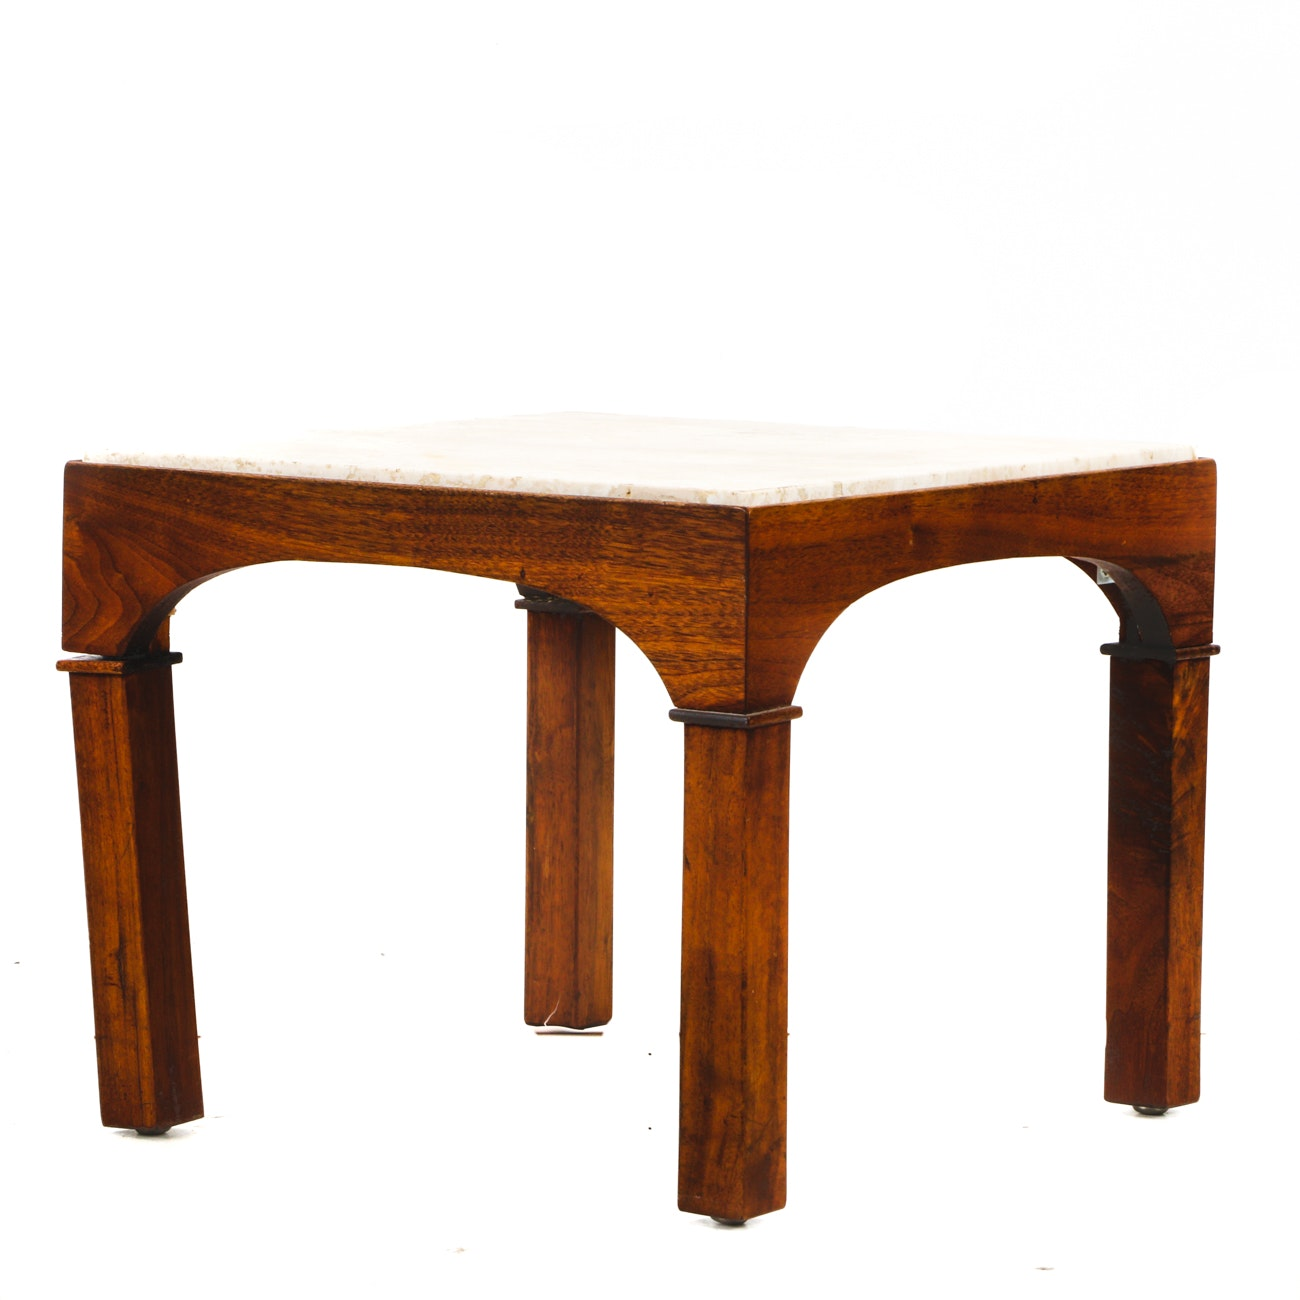 Walnut and Travertine Occasional Table